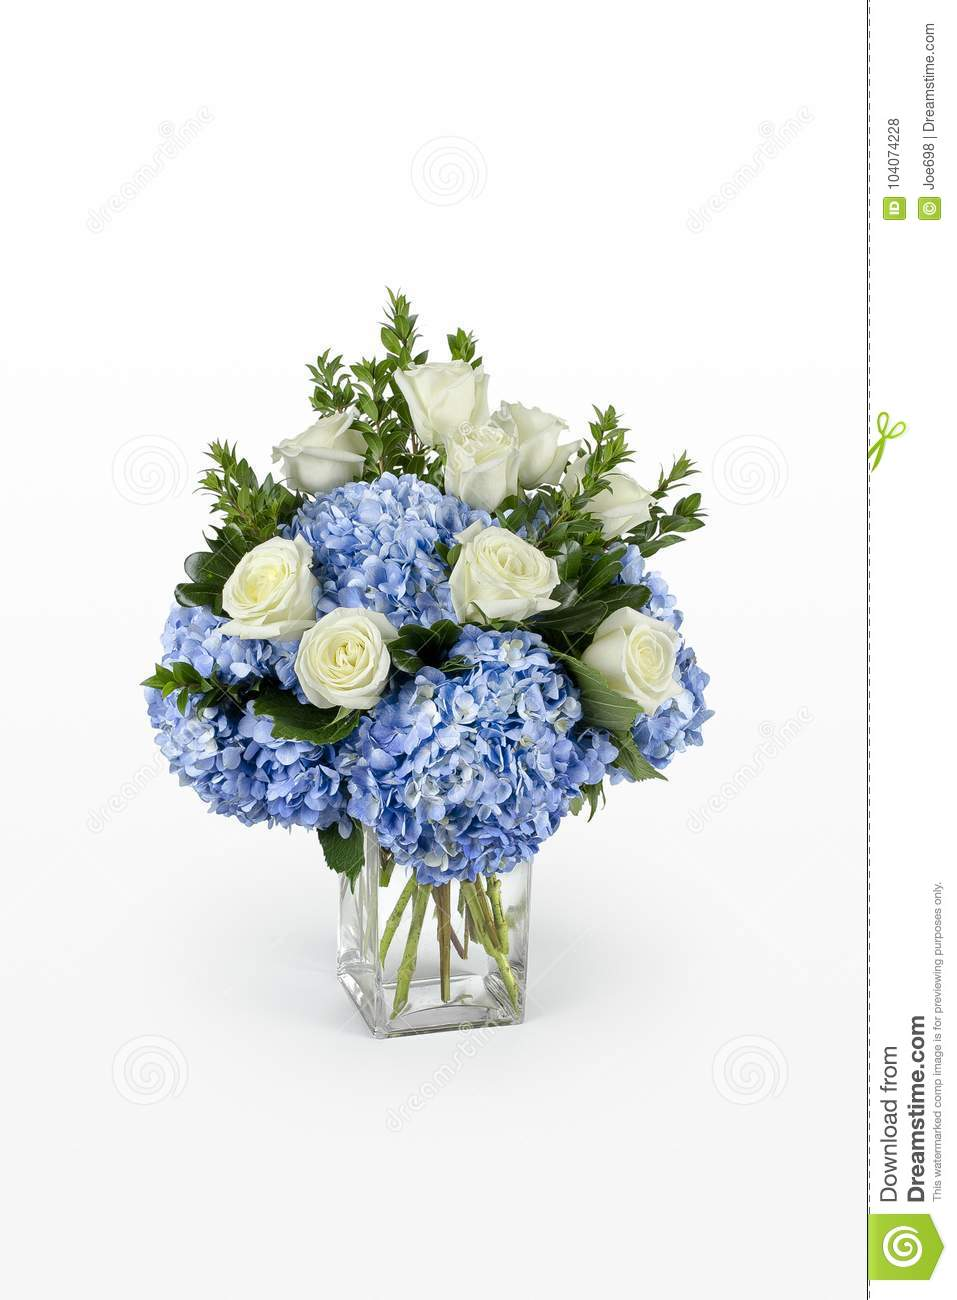 Blue Hydrangea And White Roses Flower Arrangement In A Large Glass Vase Minimal Floral Design By A Florist Stock Photo Image Of Petal Floral 104074228